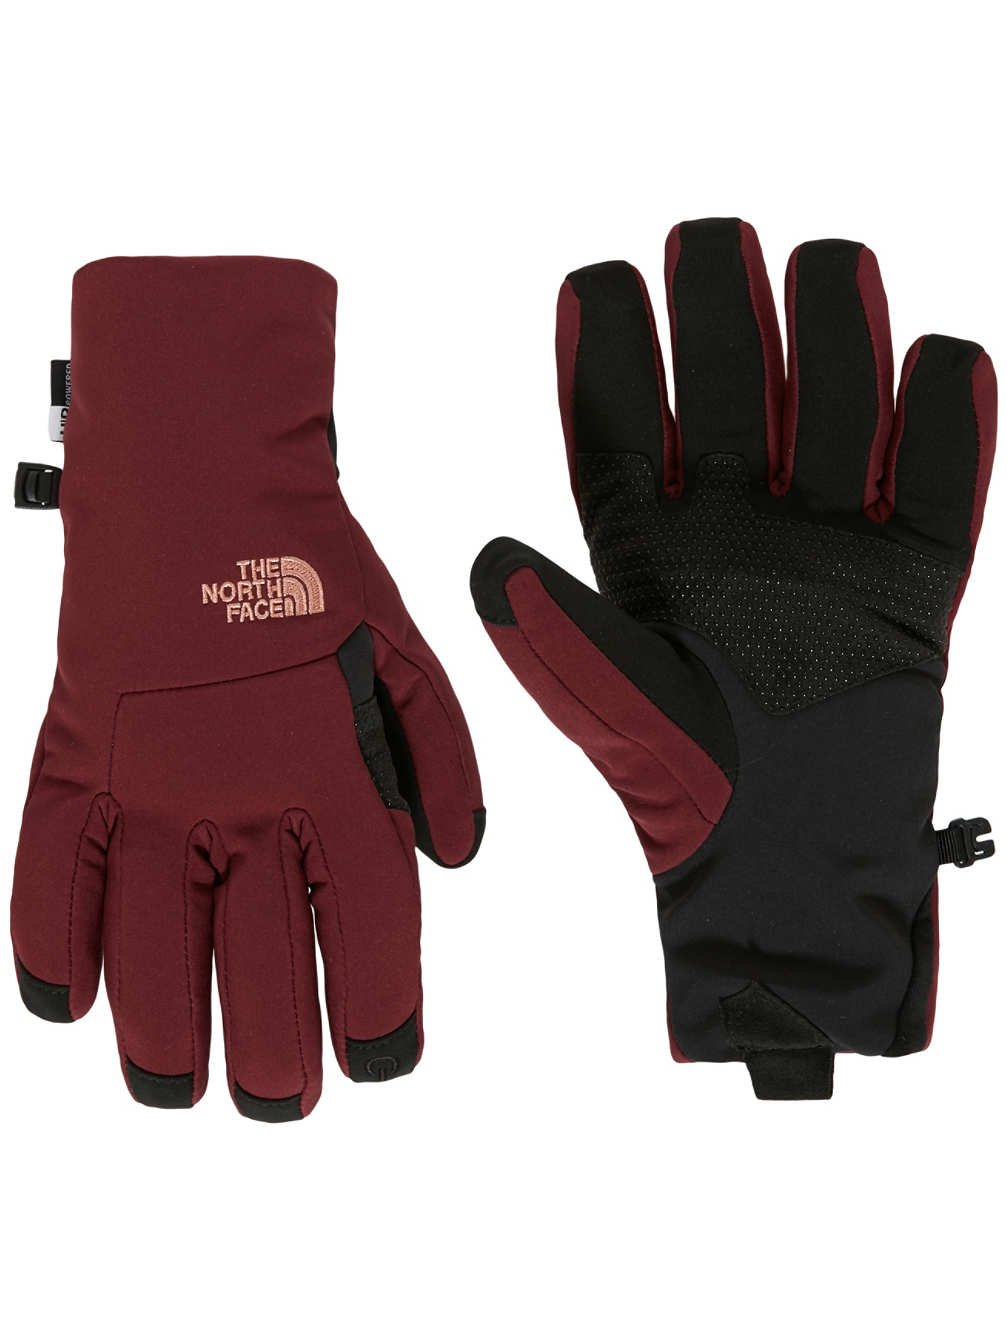 The North Face Womens Apex+ Etip Gloves (Sizes XS - L) - deep garnet red, m